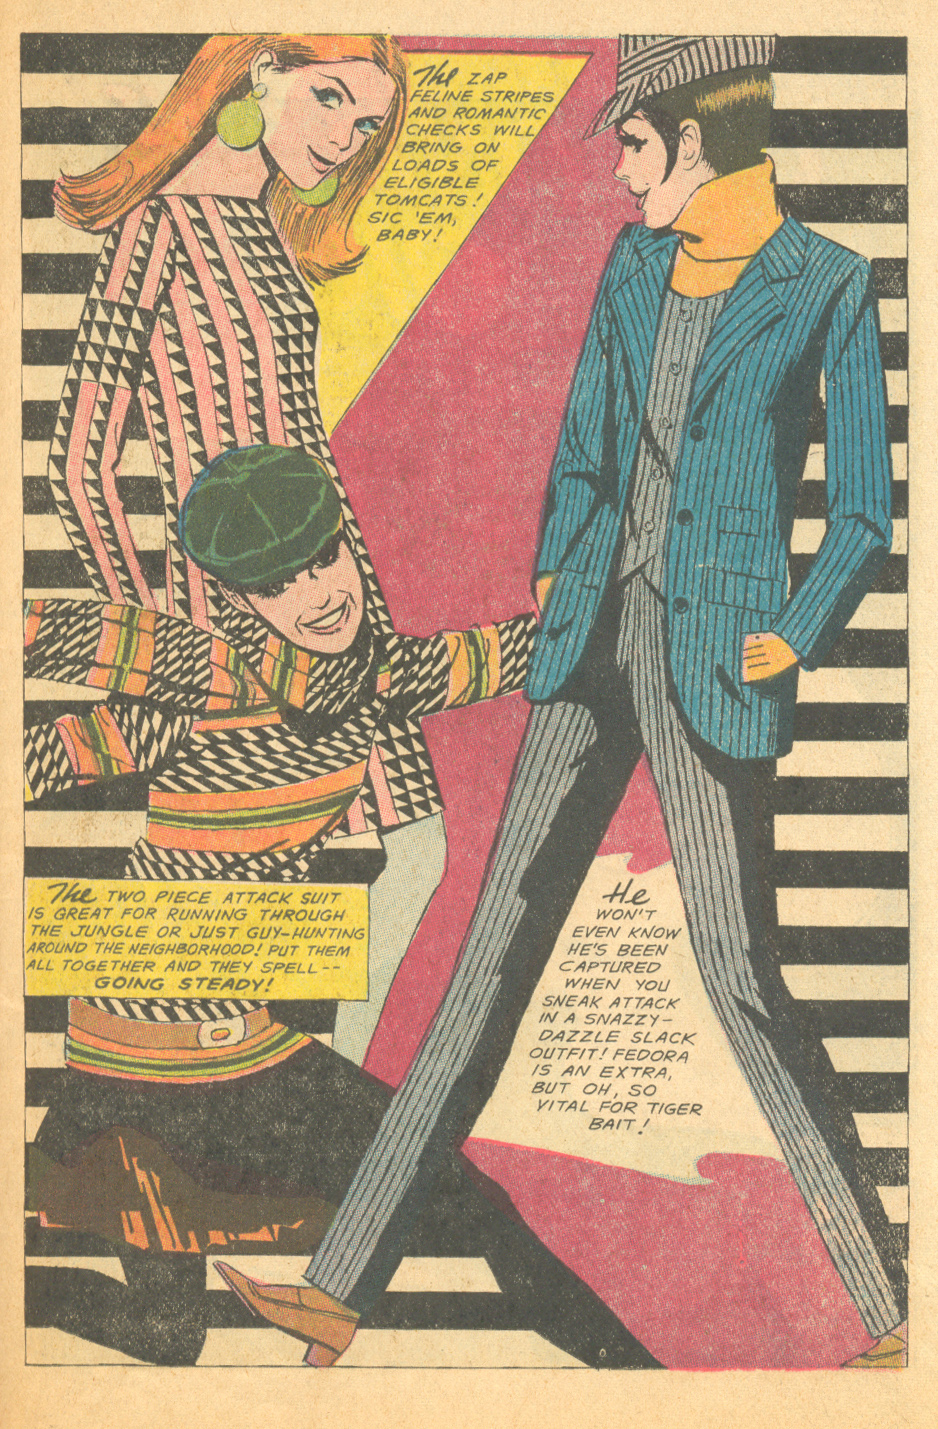 """Mad Mad Modes for Moderns""  Falling in Love  #90 (April 1967)   Illustrated by Tony Abruzzo"